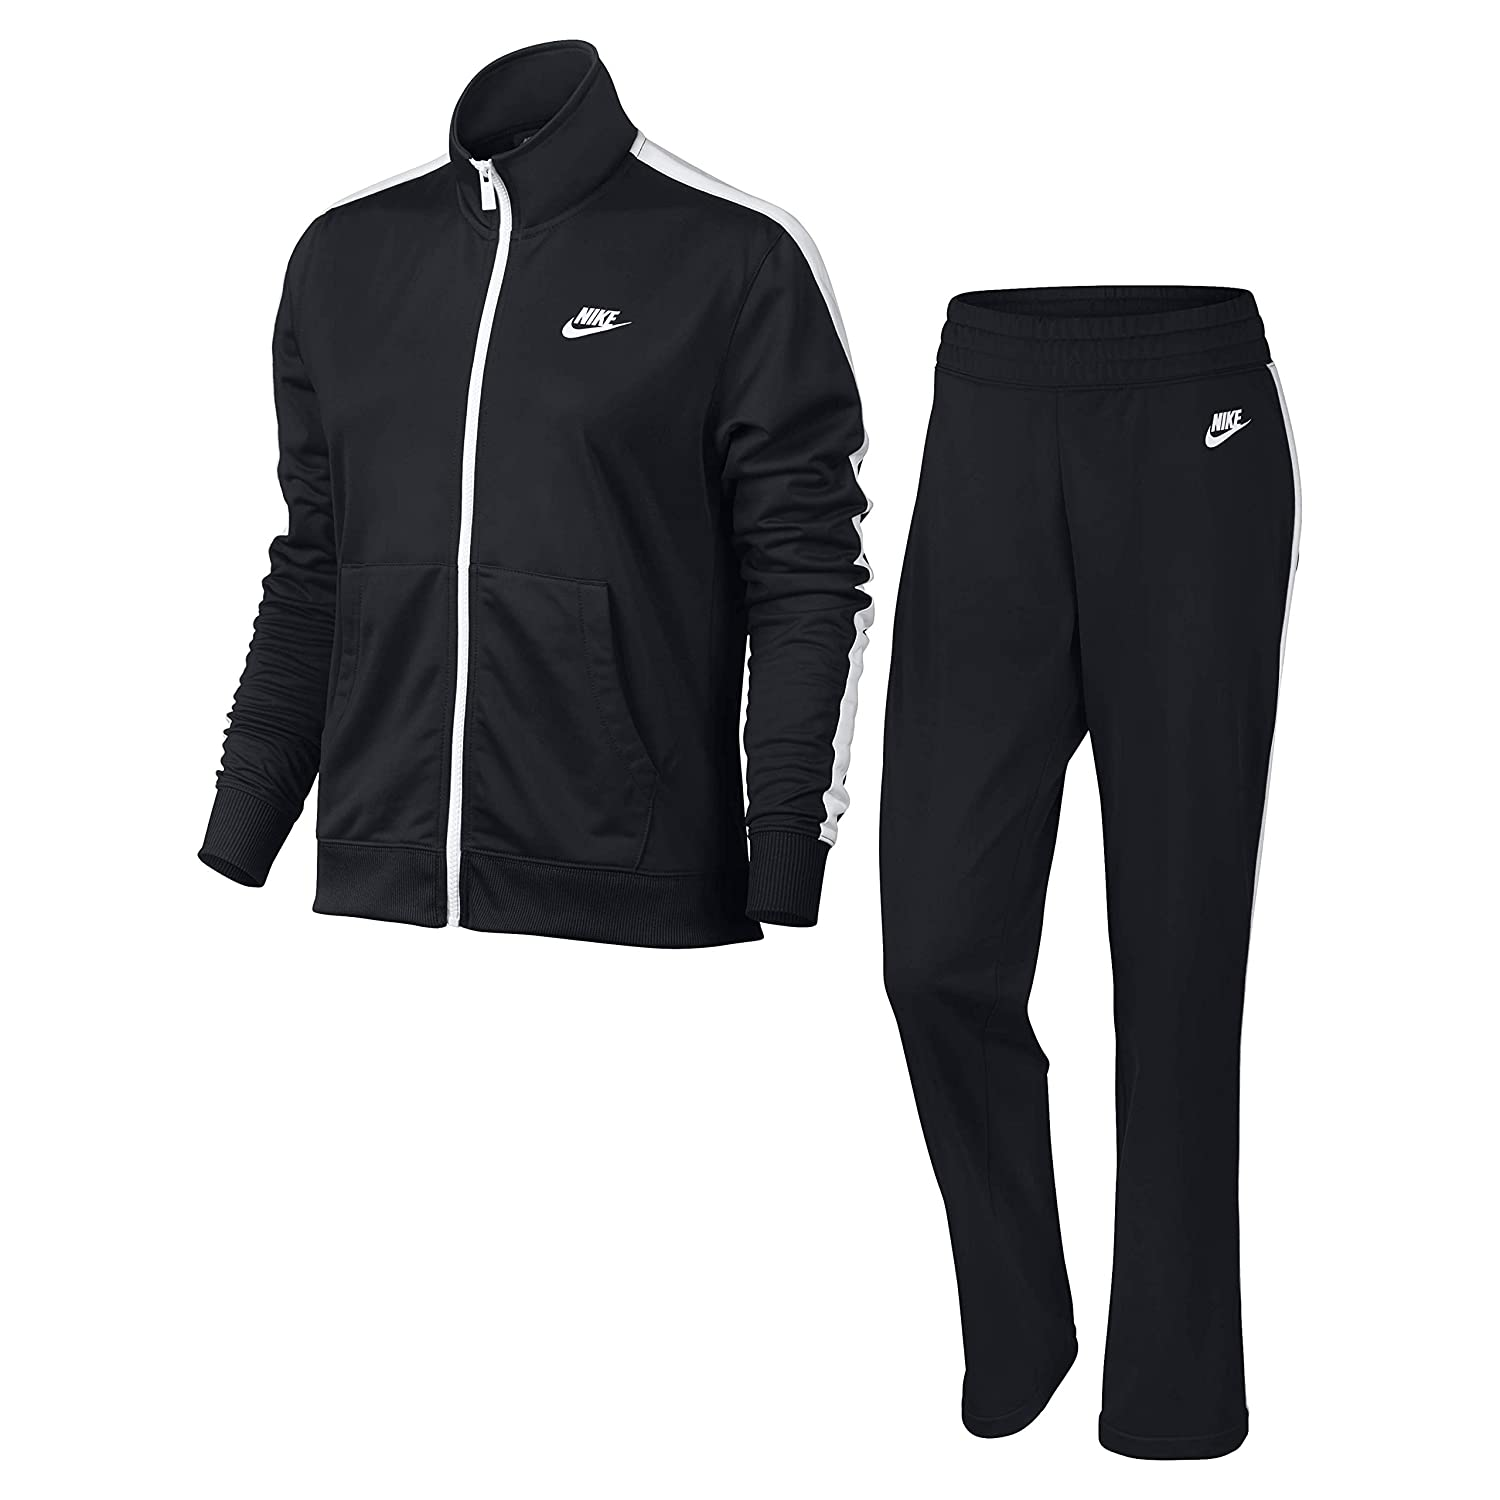 brand new 06317 459fb Nike W NSW Trk Suit Pk Oh - Tracksuit Women  Amazon.co.uk  Sports   Outdoors